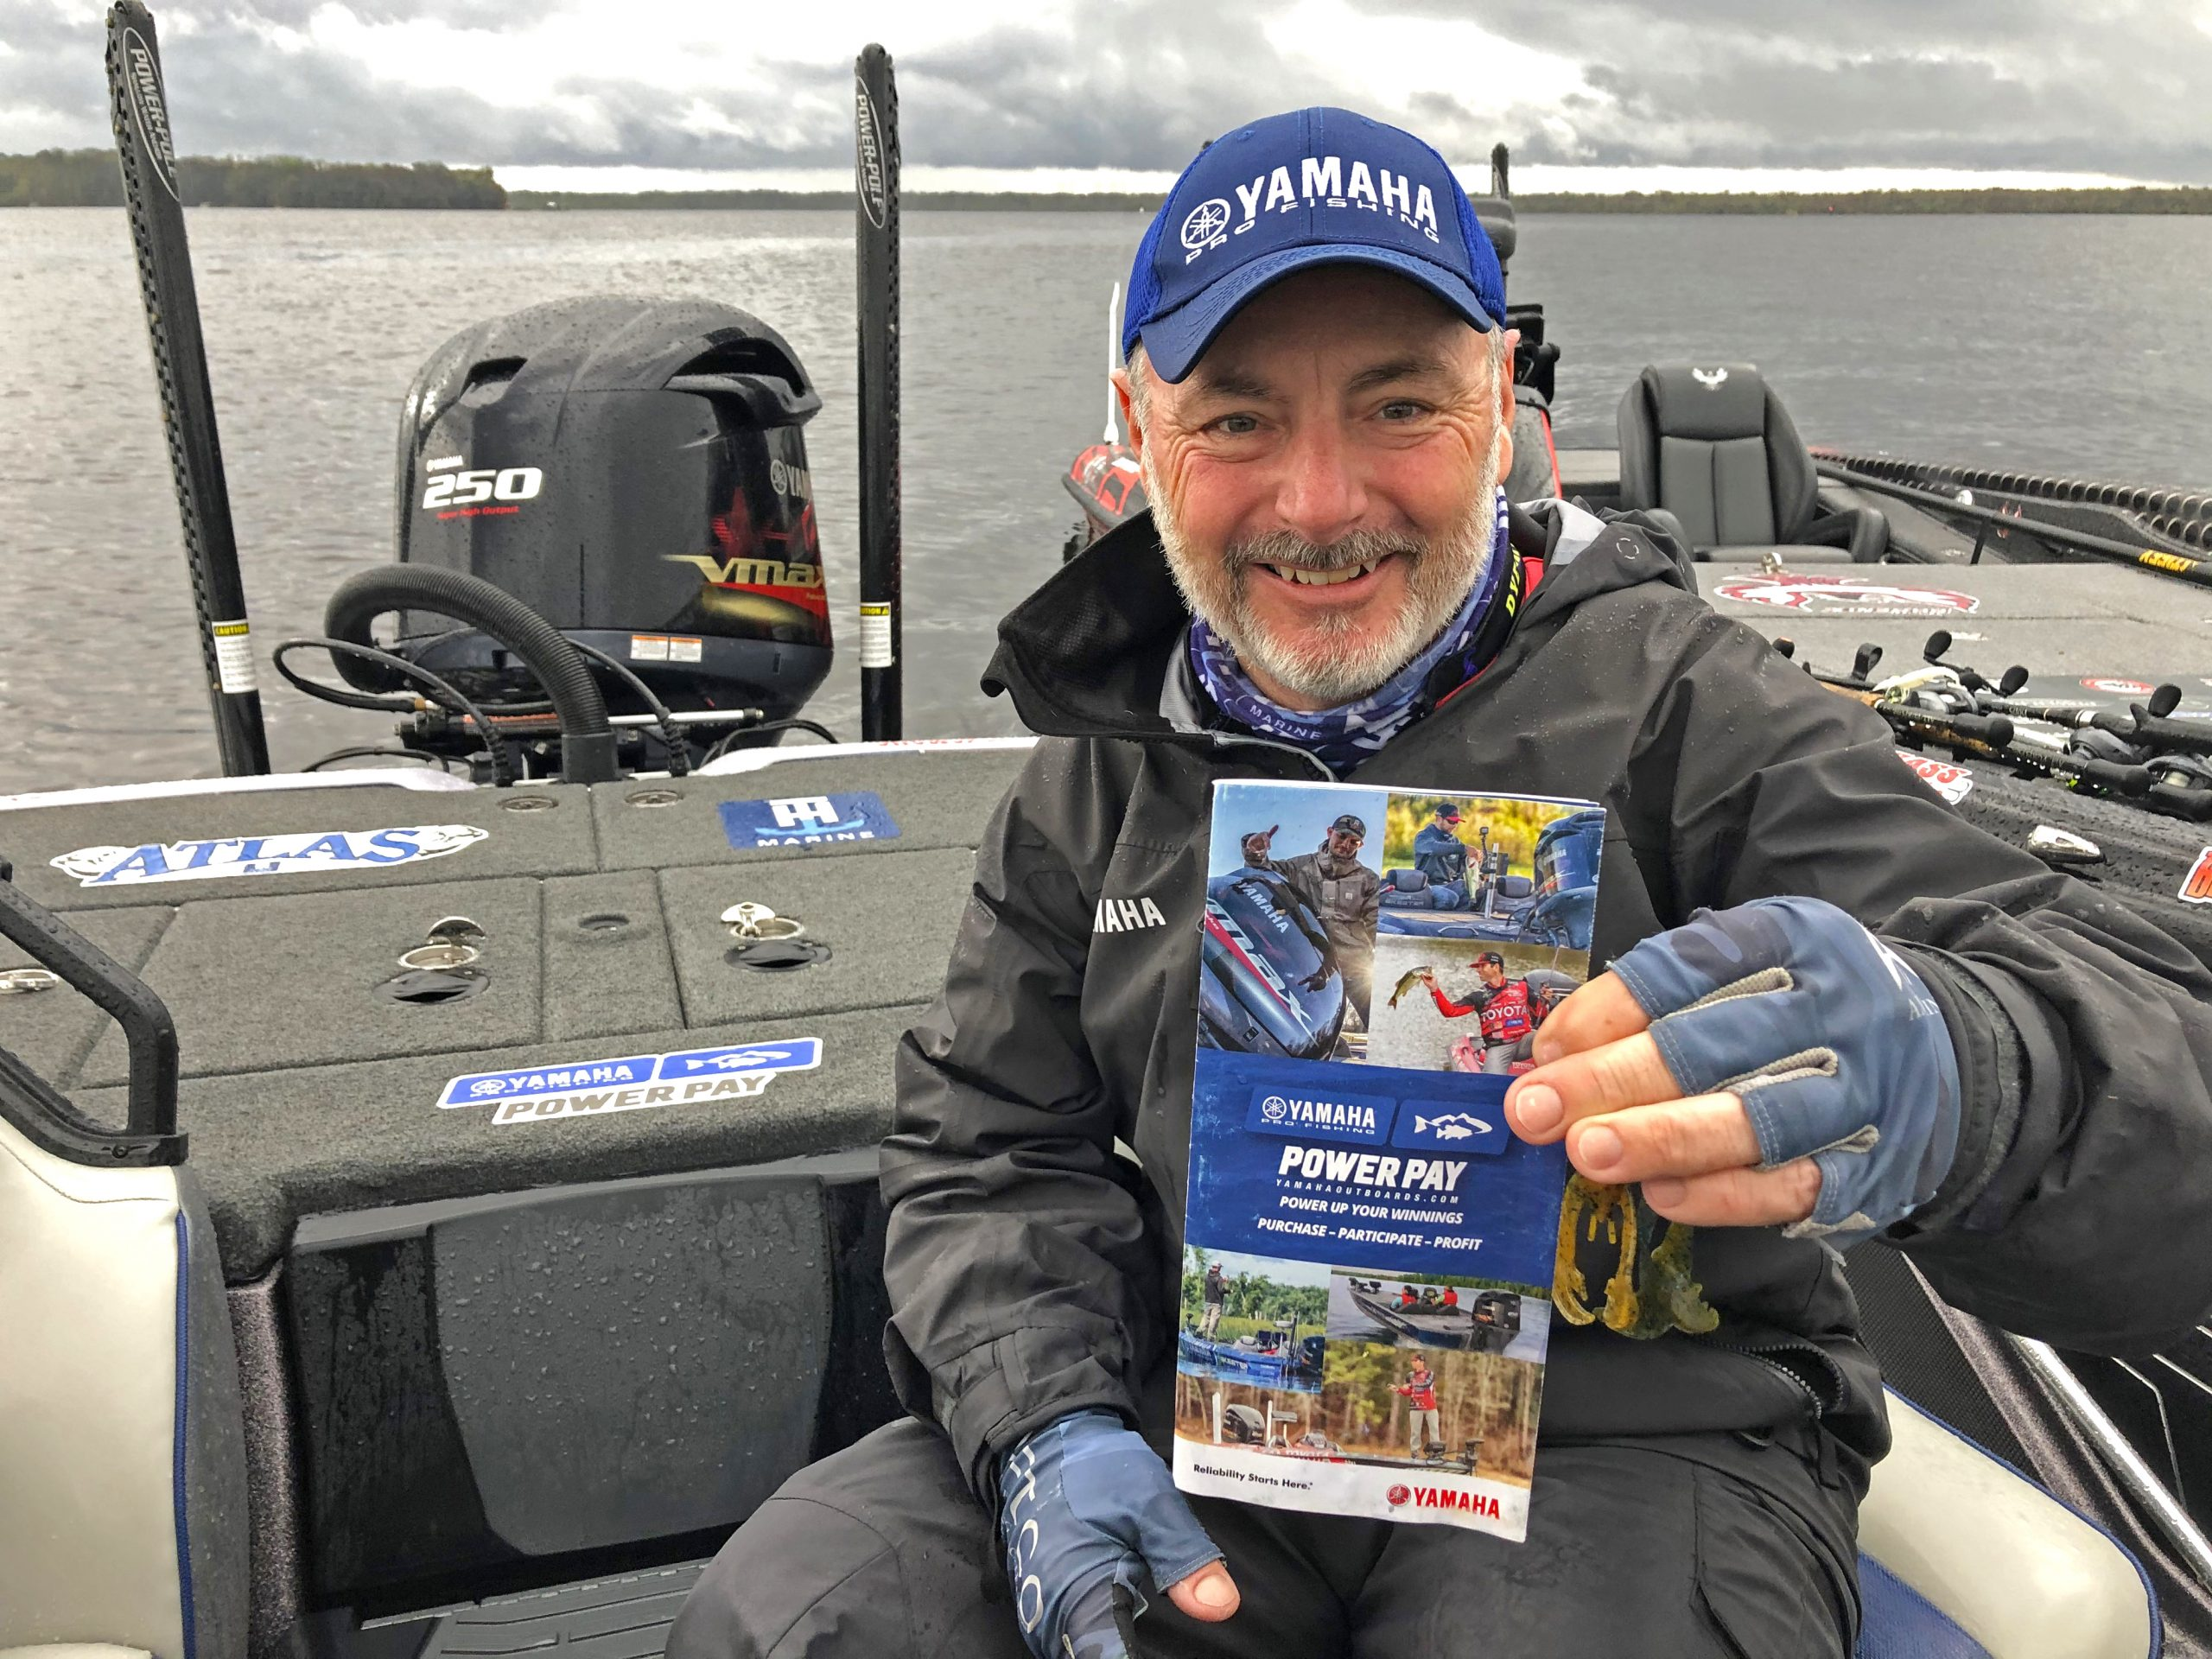 Angler holds up Power Pay brochure